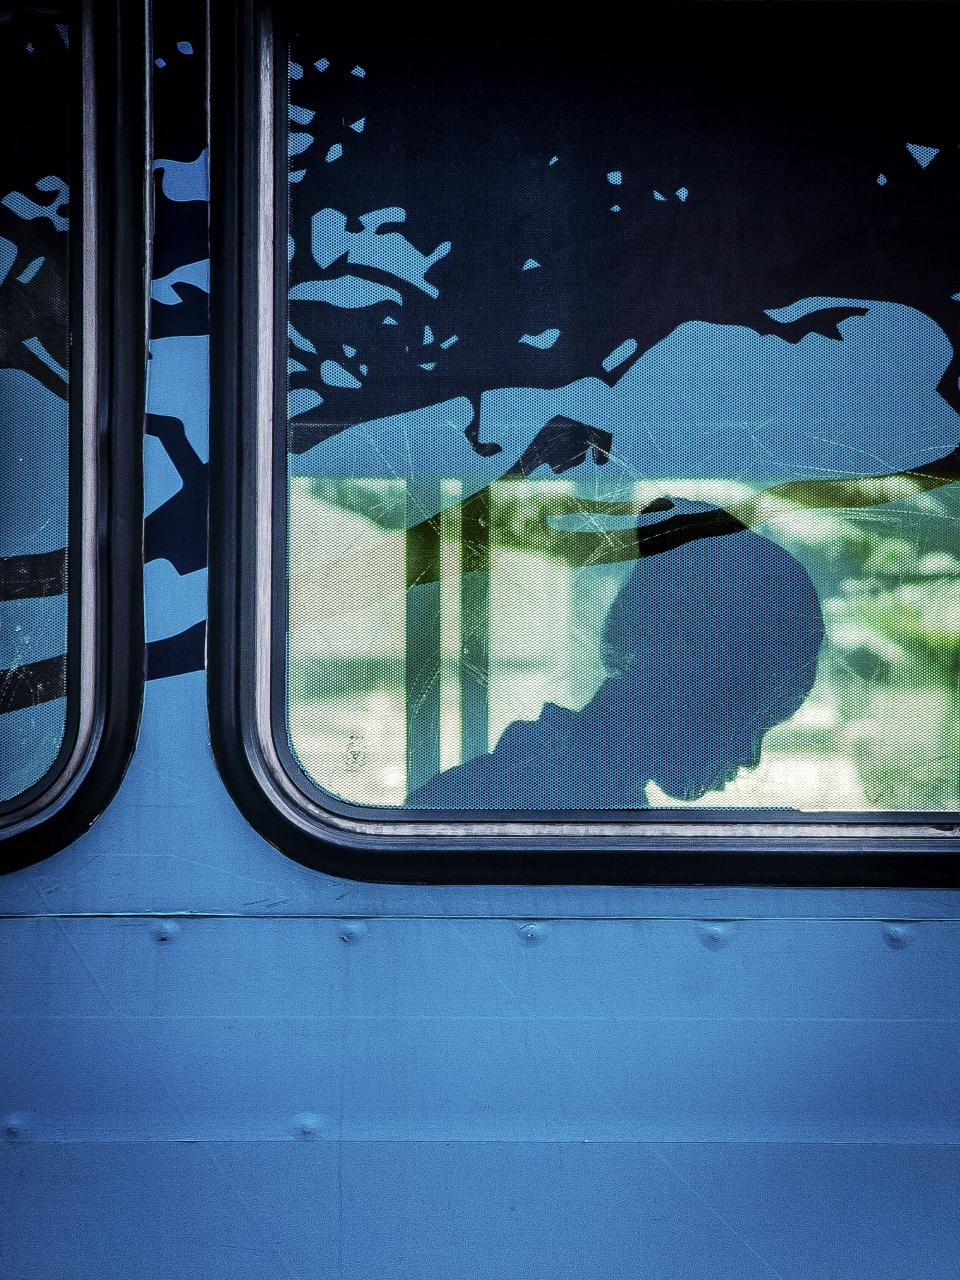 train window people girl passenger silhouette travel